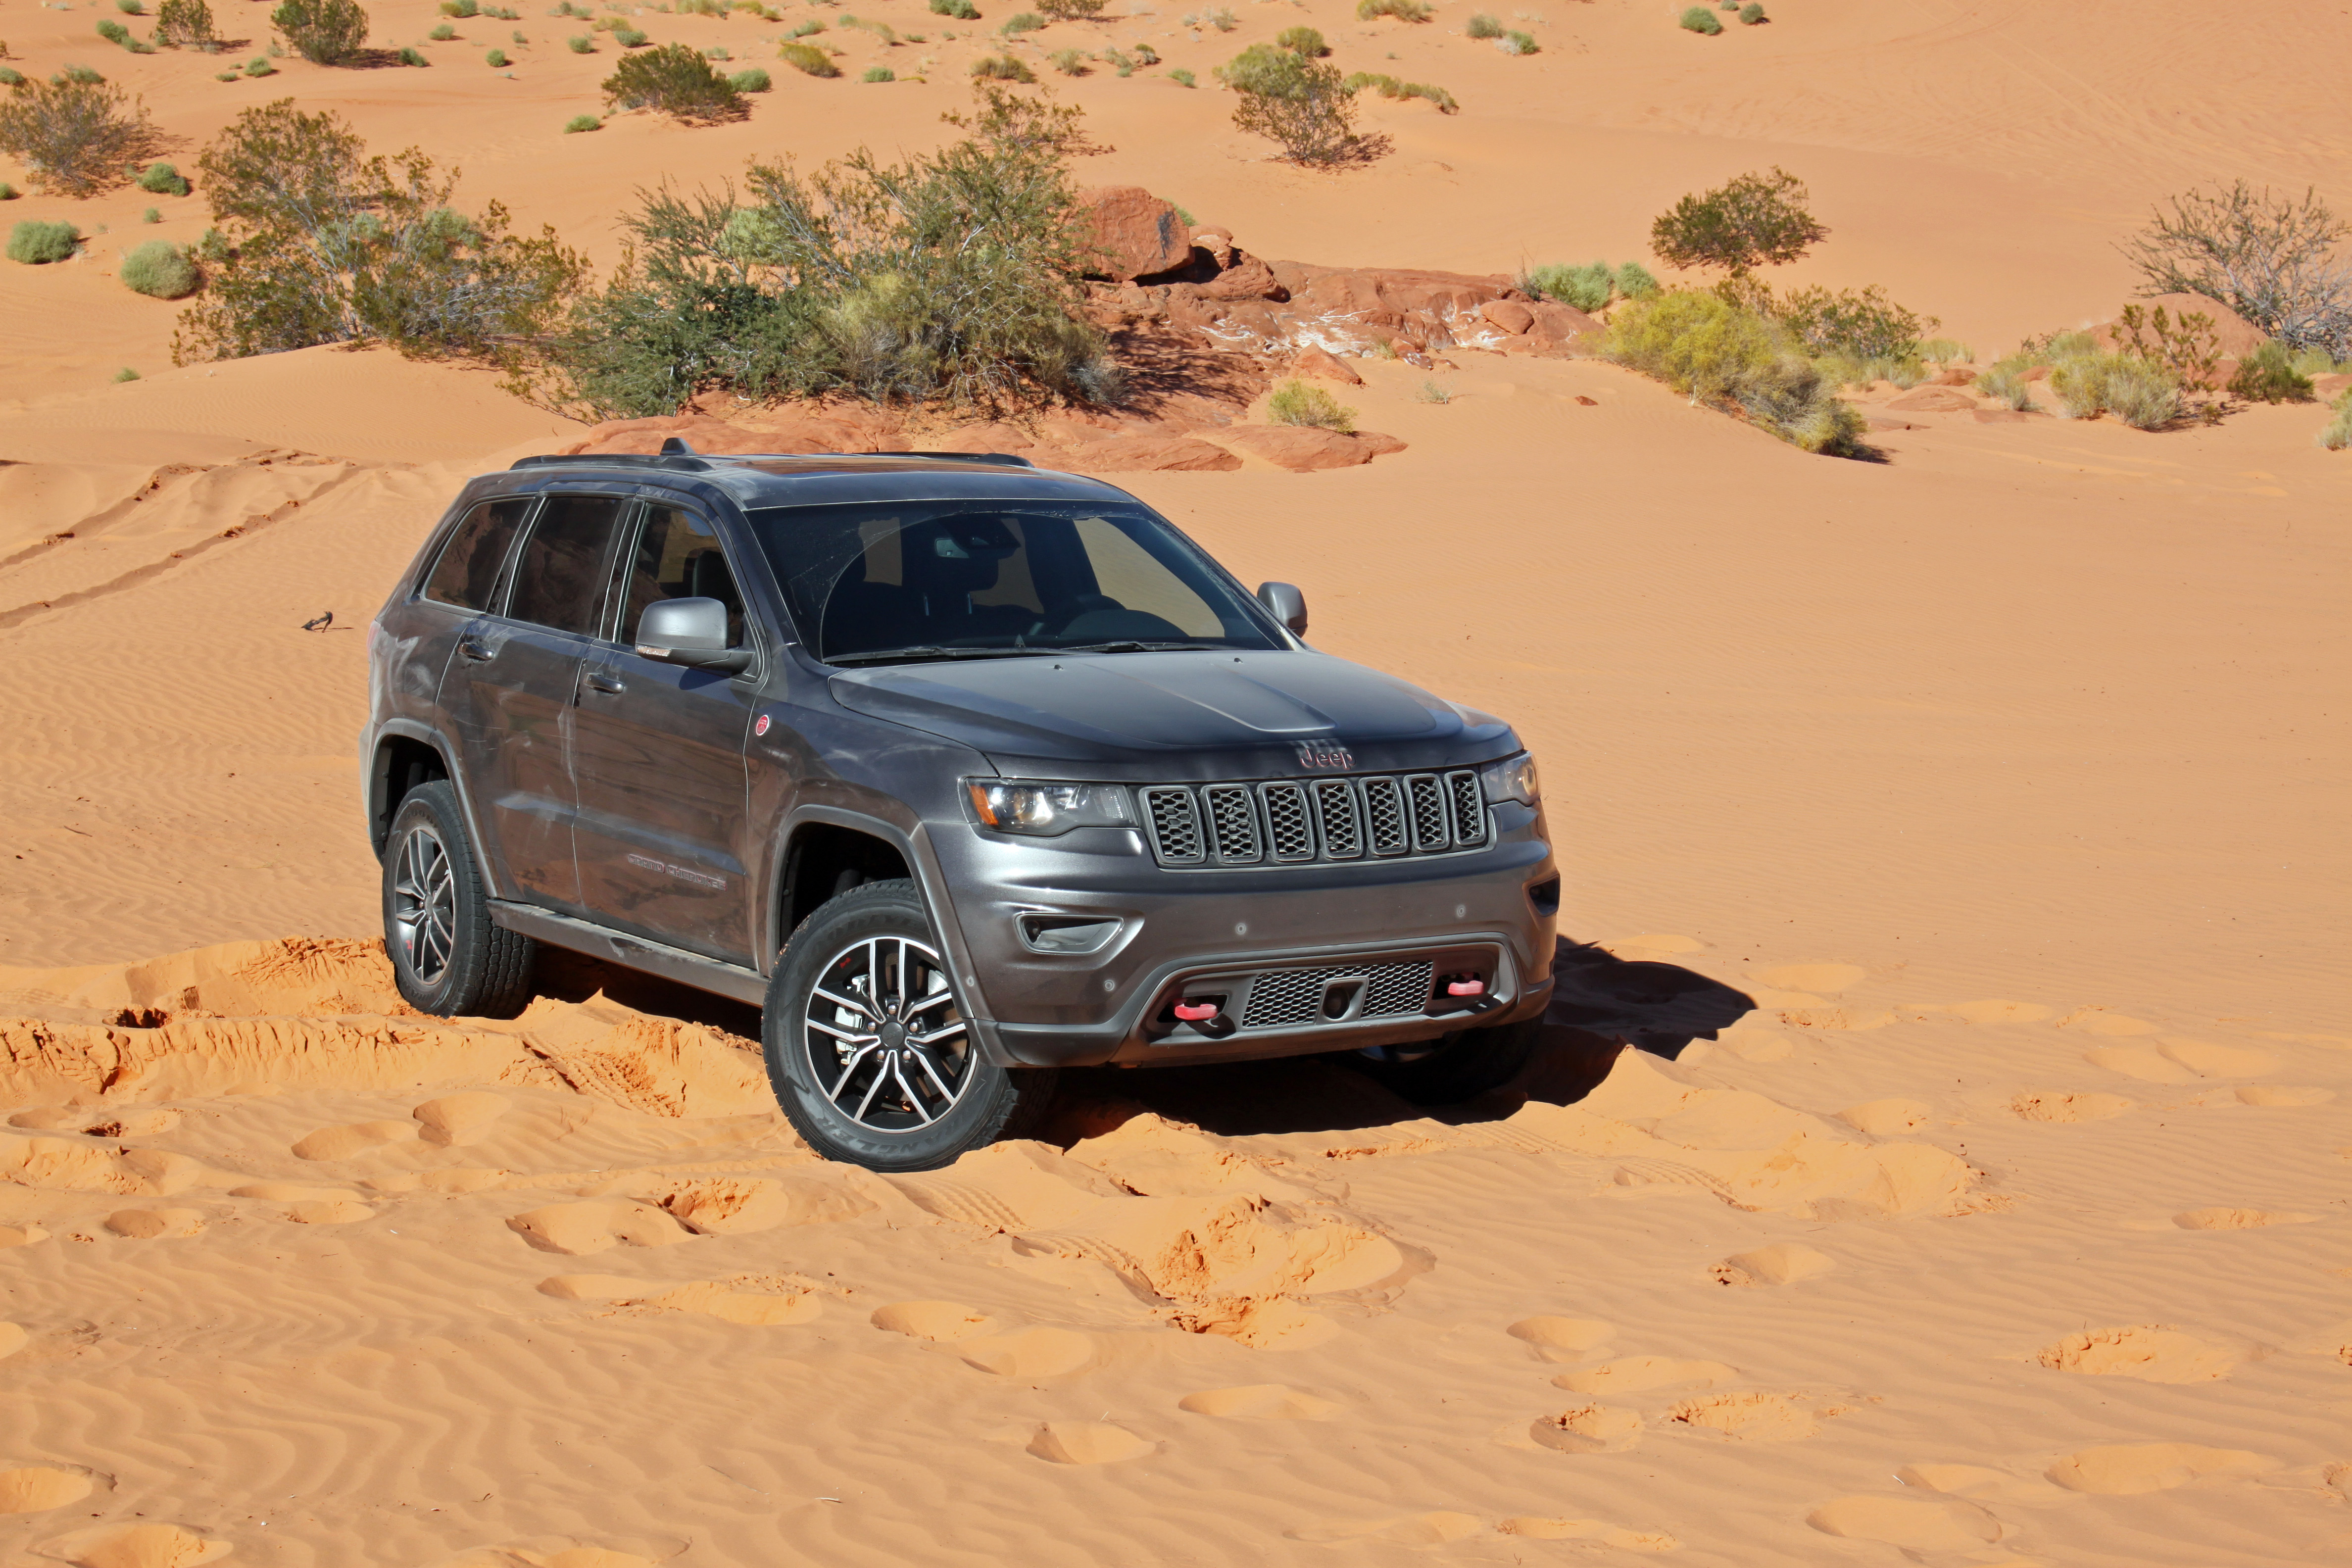 2019 Jeep Grand Cherokee Trailhawk Review - AutoGuide.com